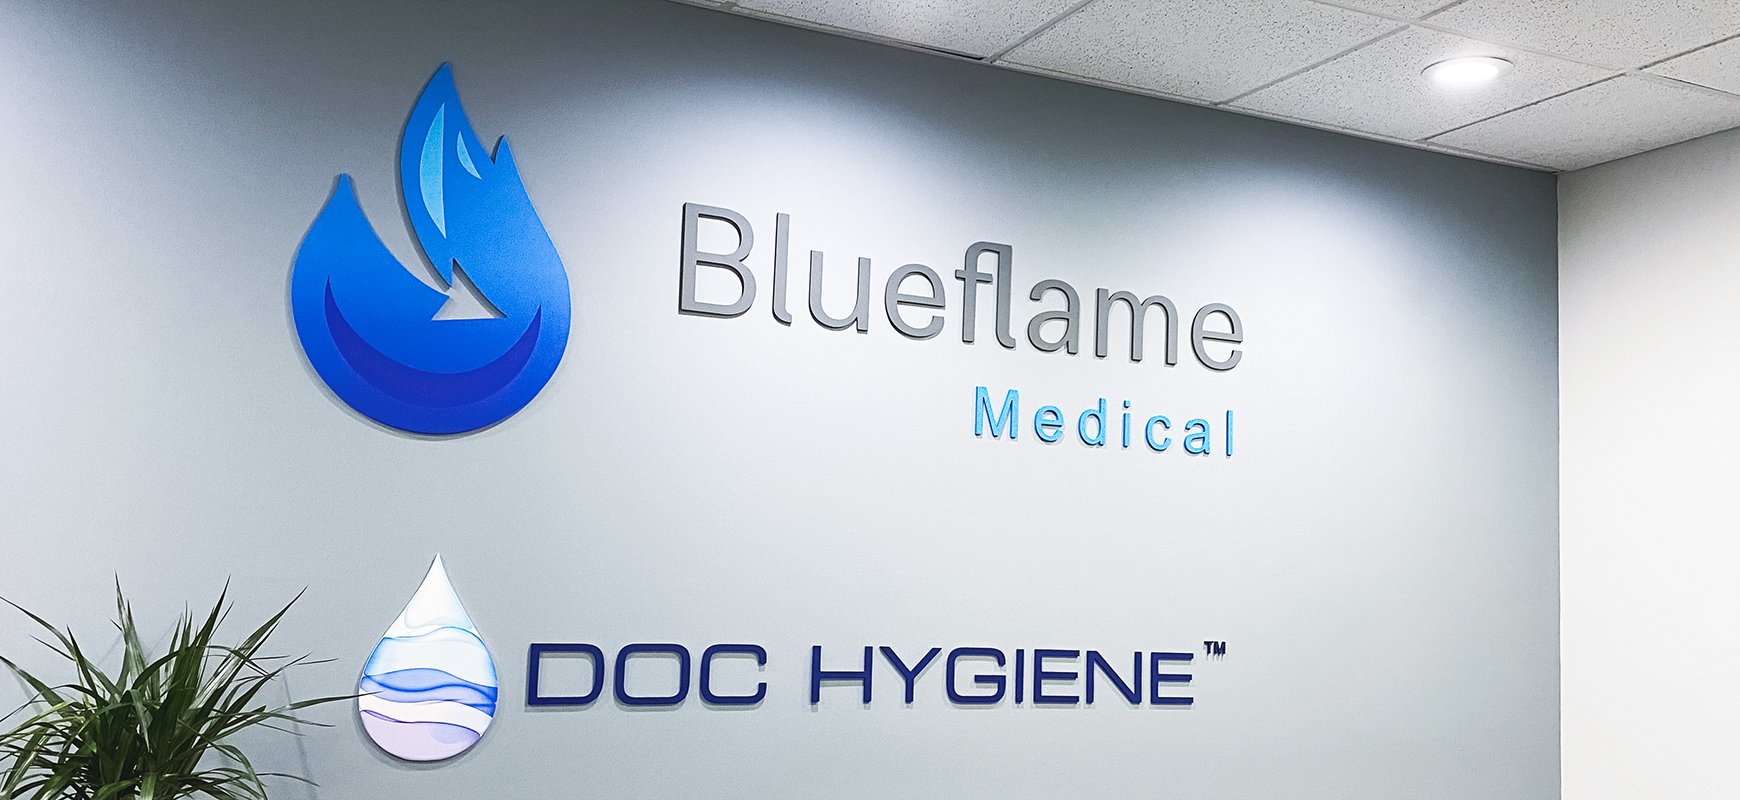 Blueflame Medical interior business sign with brand name 3D letters and the company logo made of aluminum for office branding